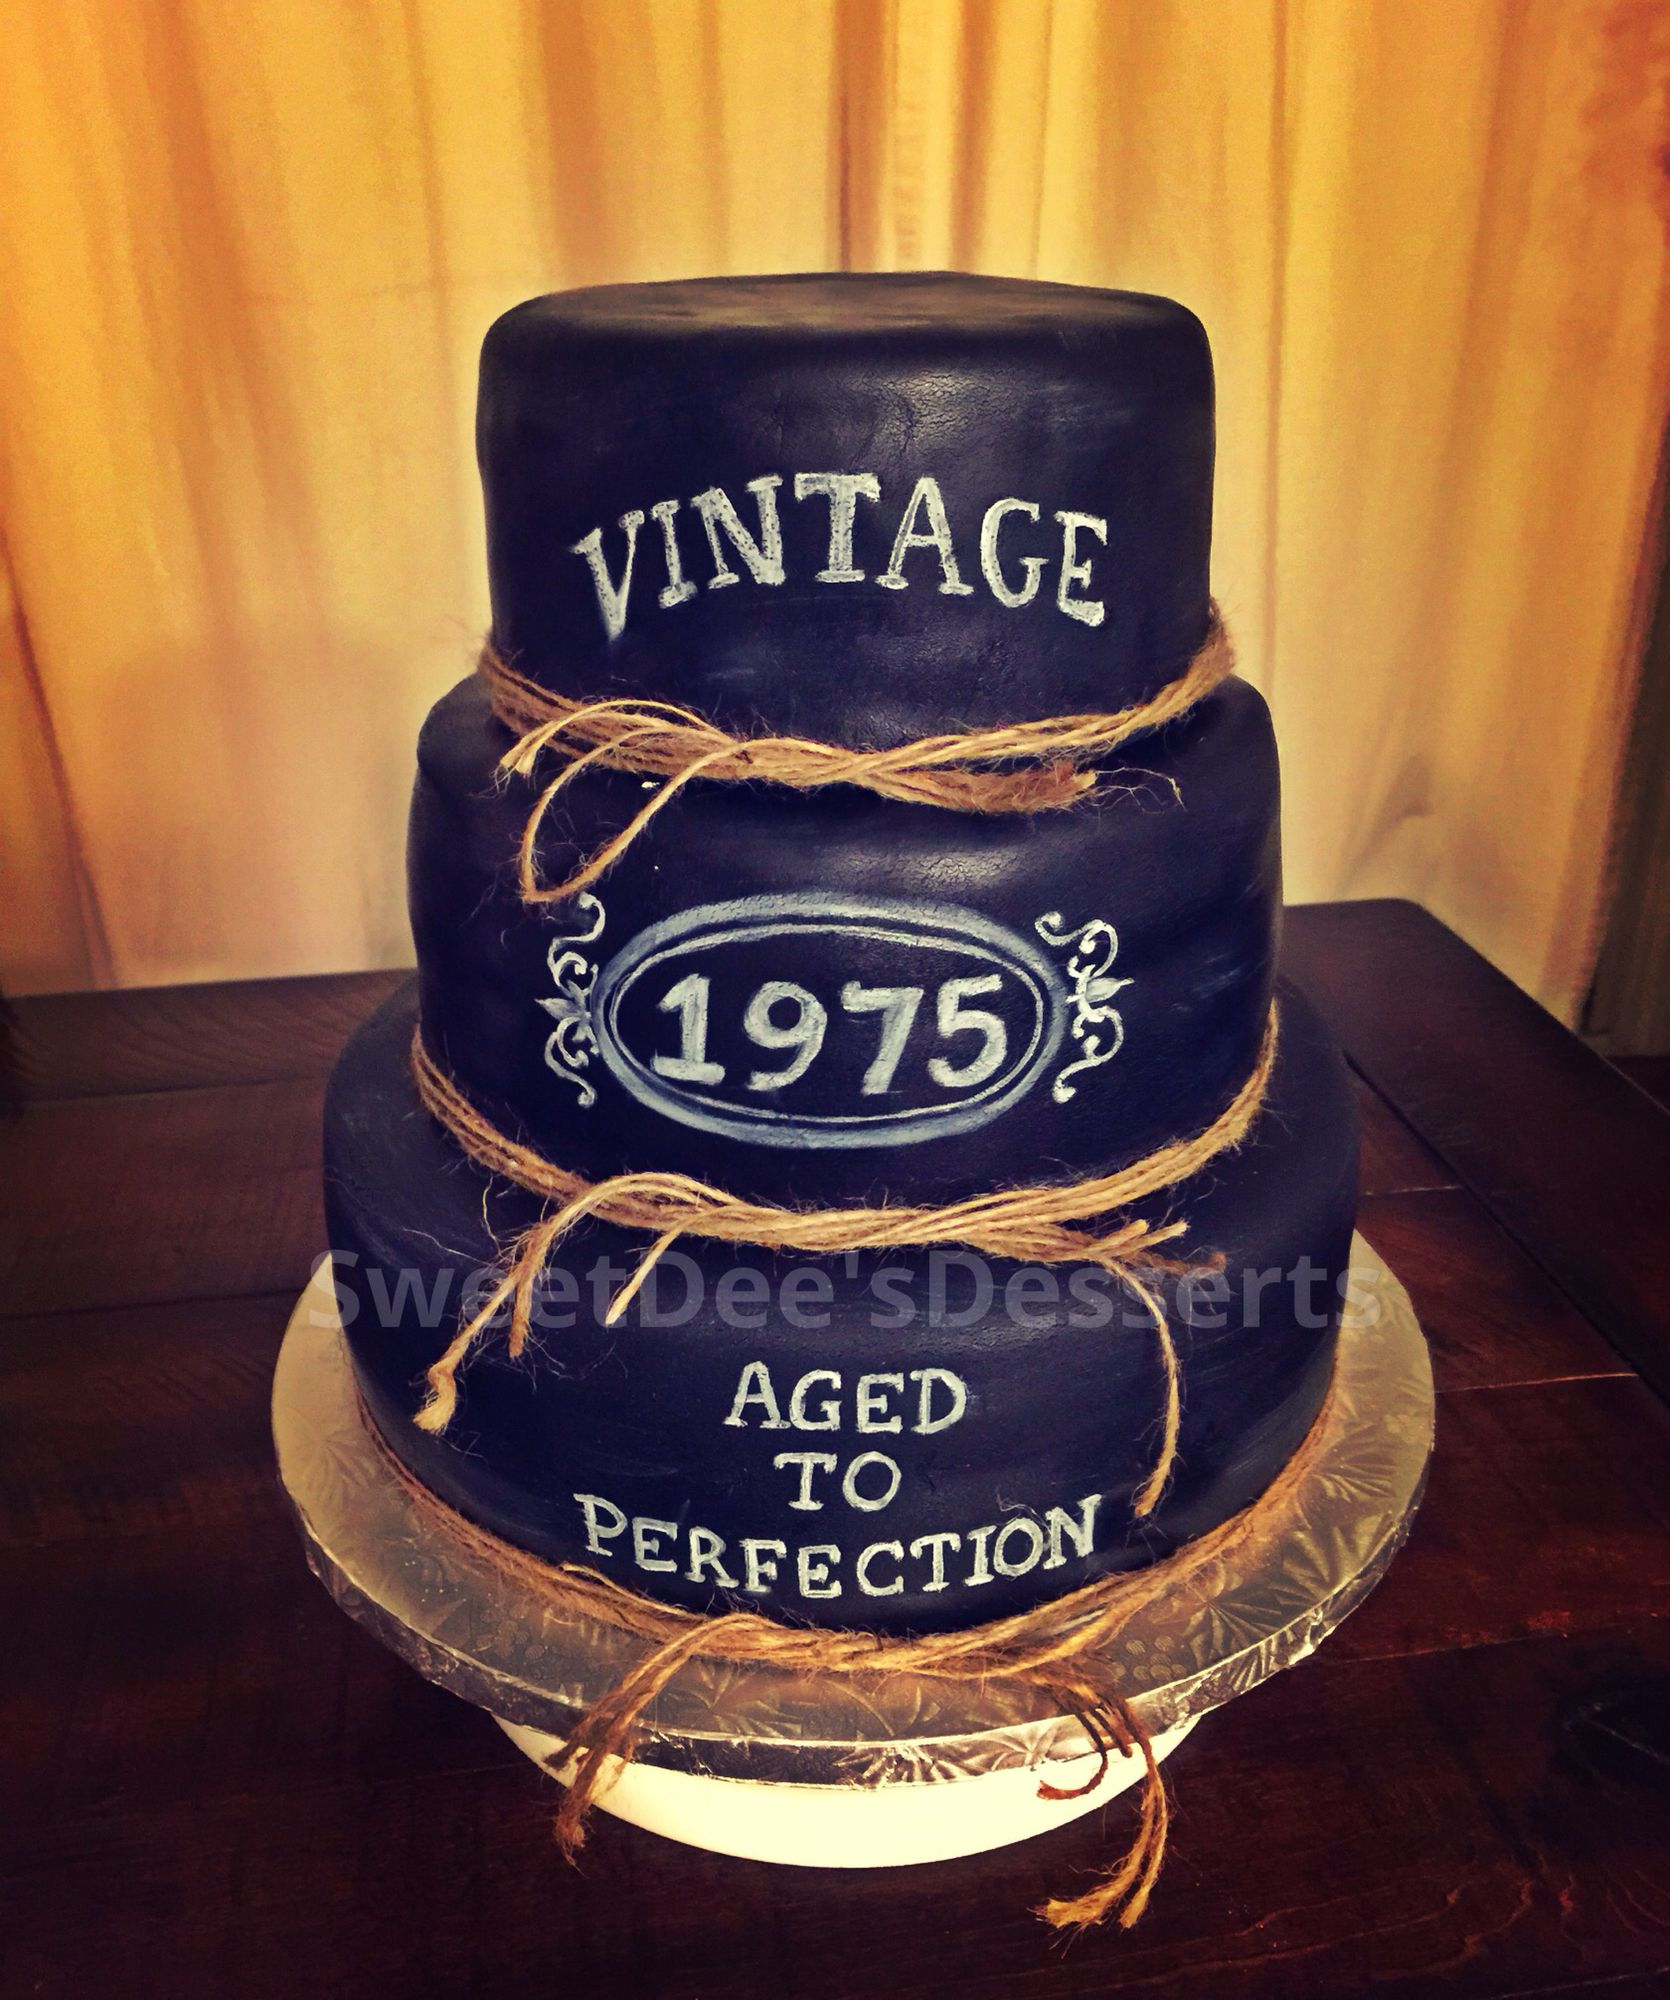 Vintage whiskey 40th aged to perfection cake